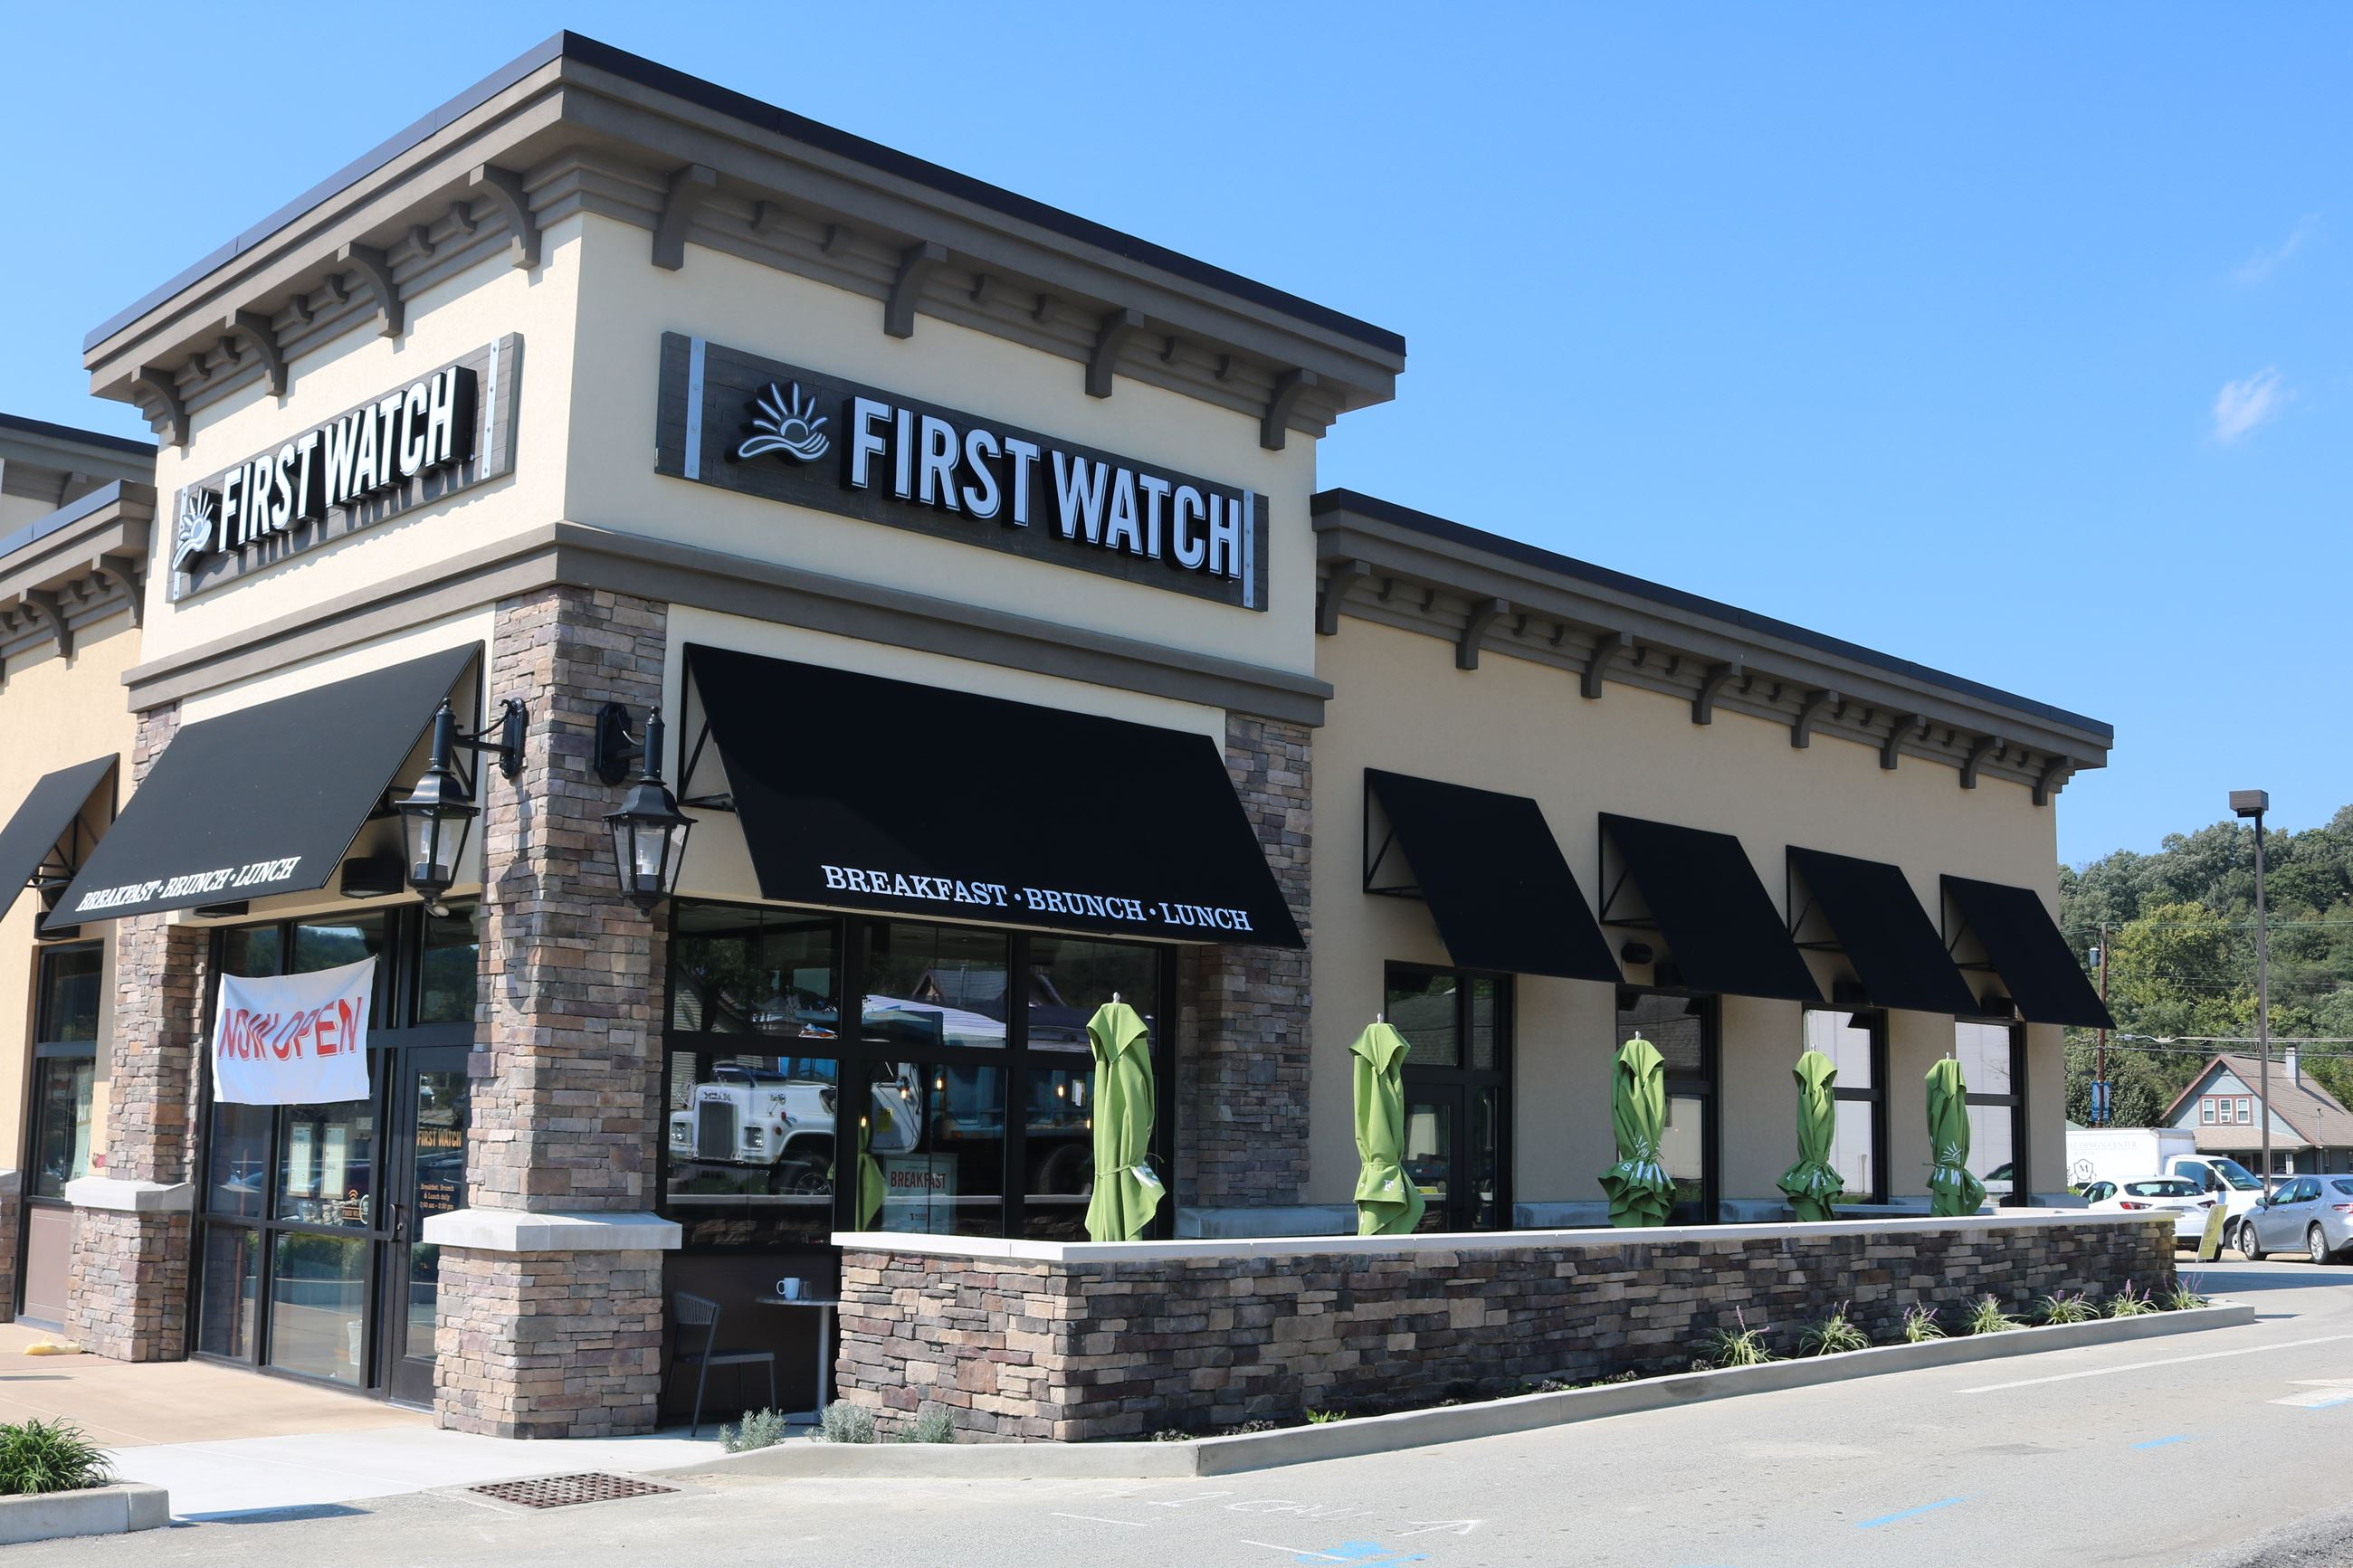 First Watch Restaurant in Murrysville